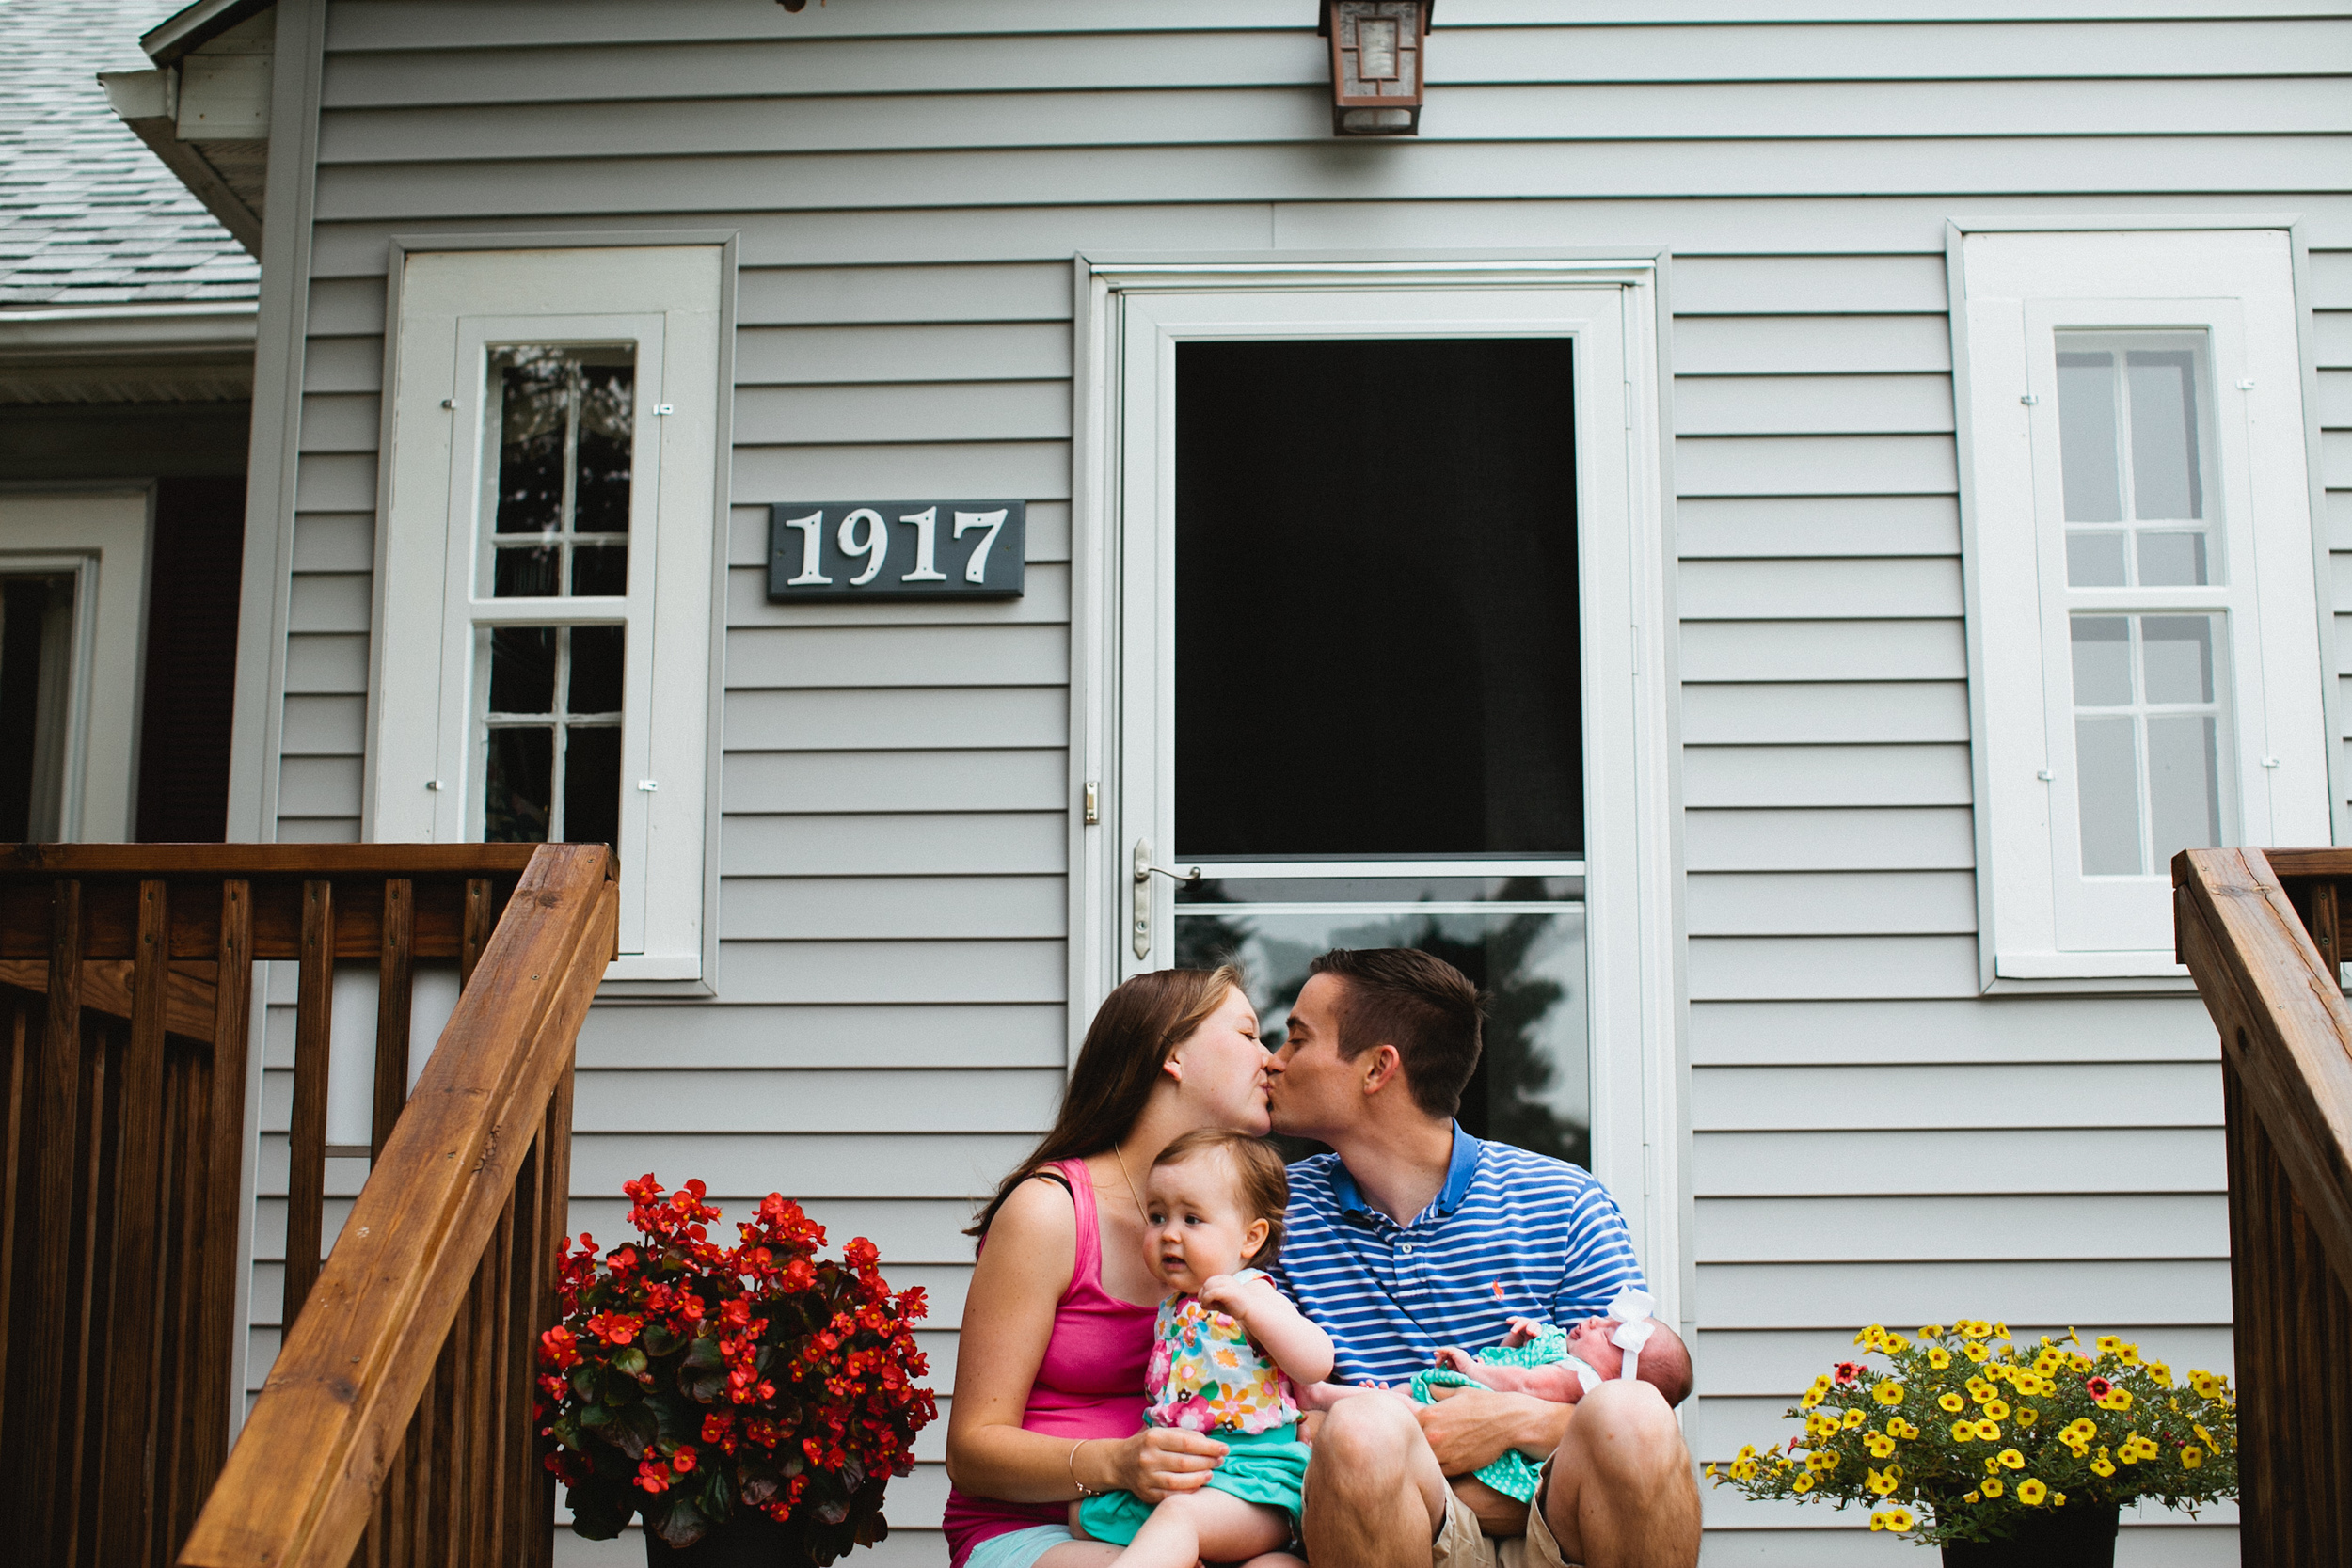 family sitting on front porch kissing with new baby and flowers in planters